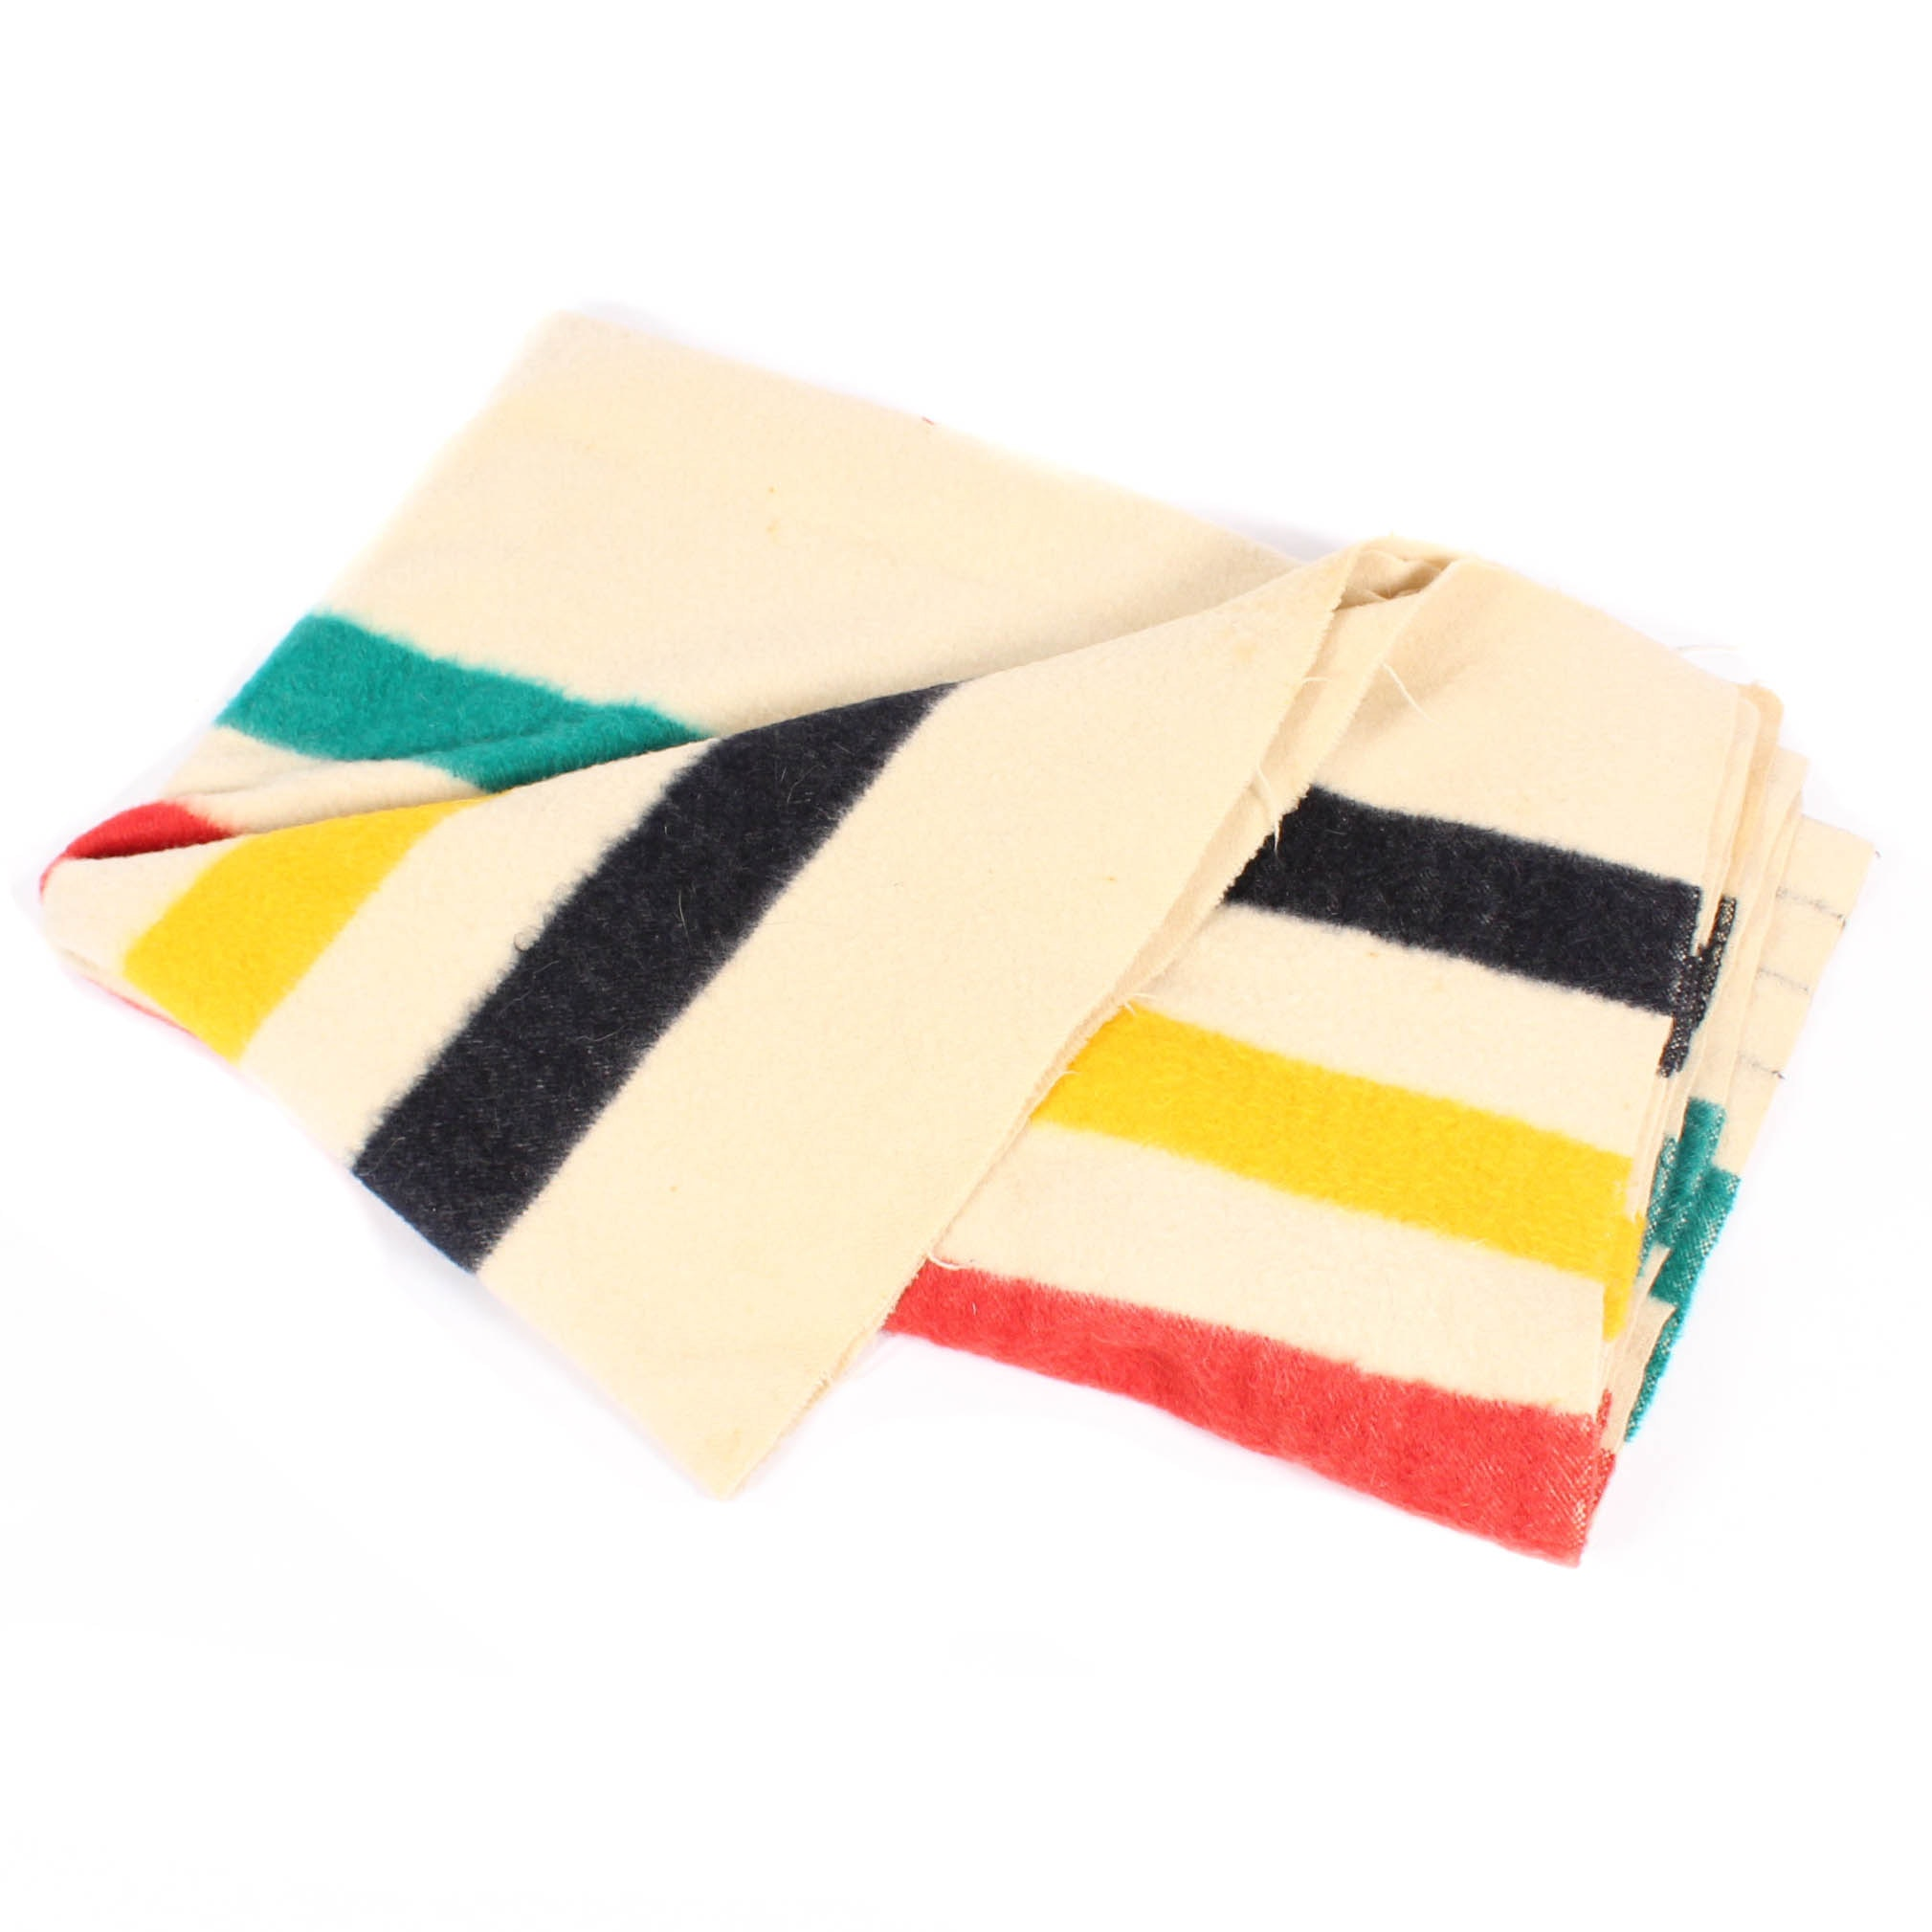 Vintage Hudson's Bay Point Wool Blanket